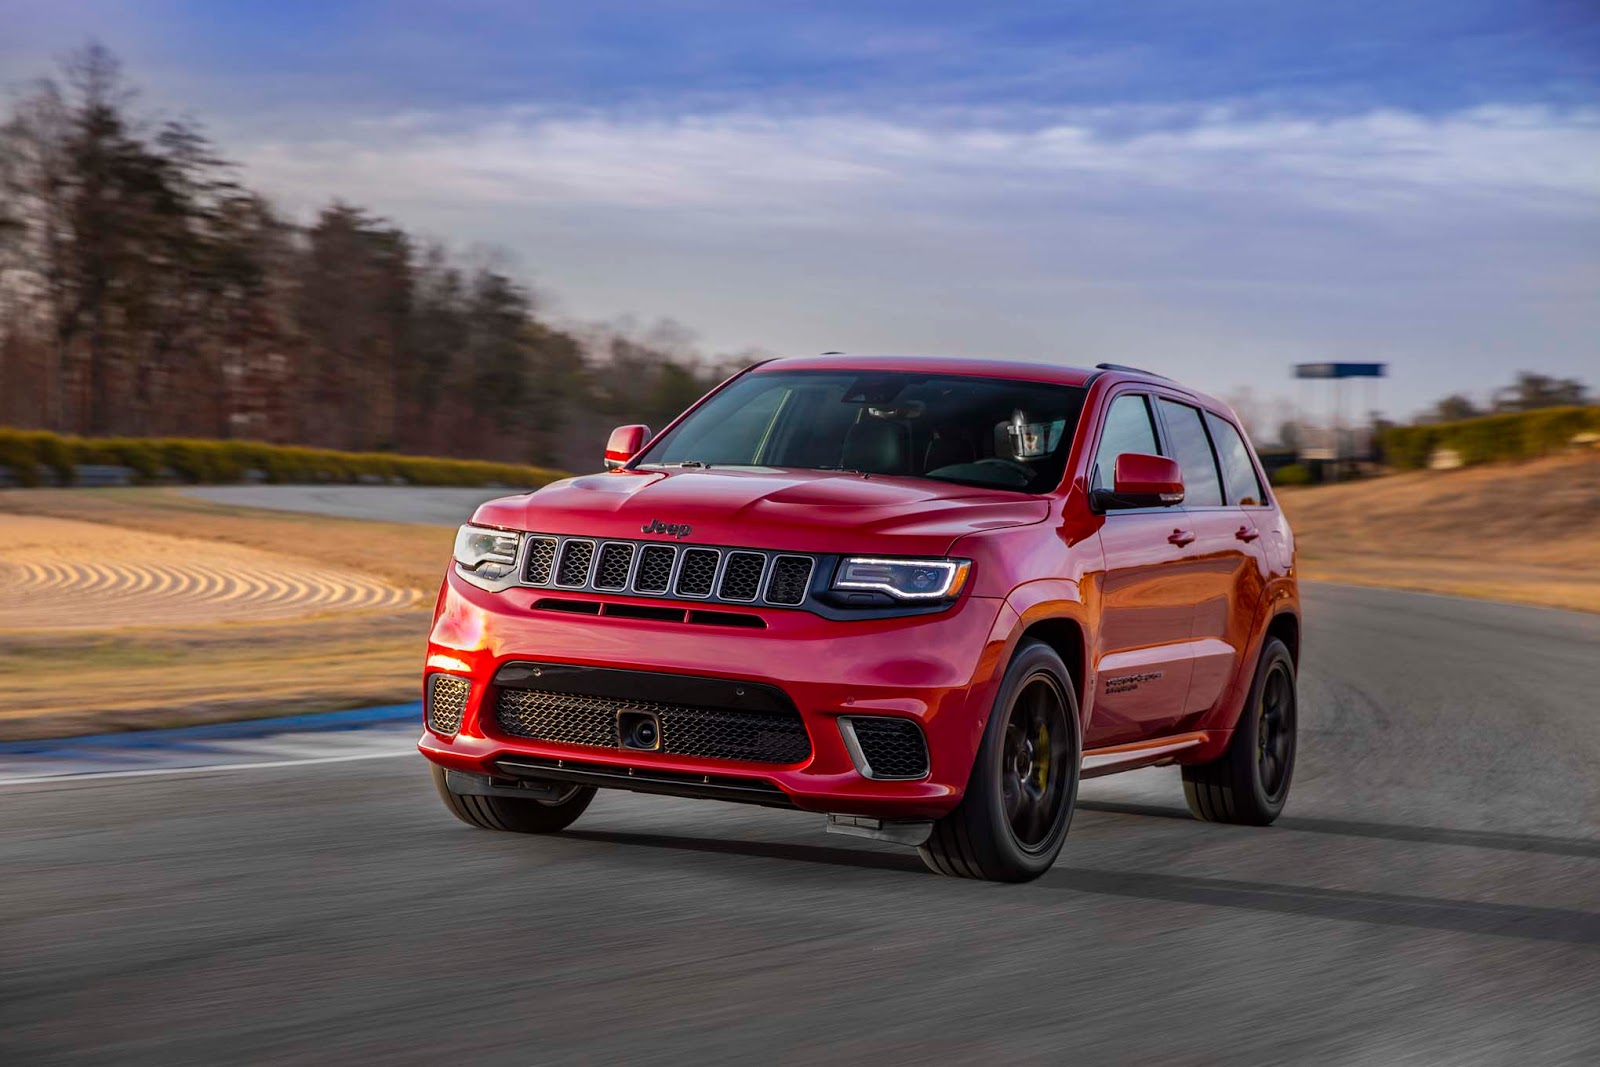 Jeep could be going to China's Great Wall